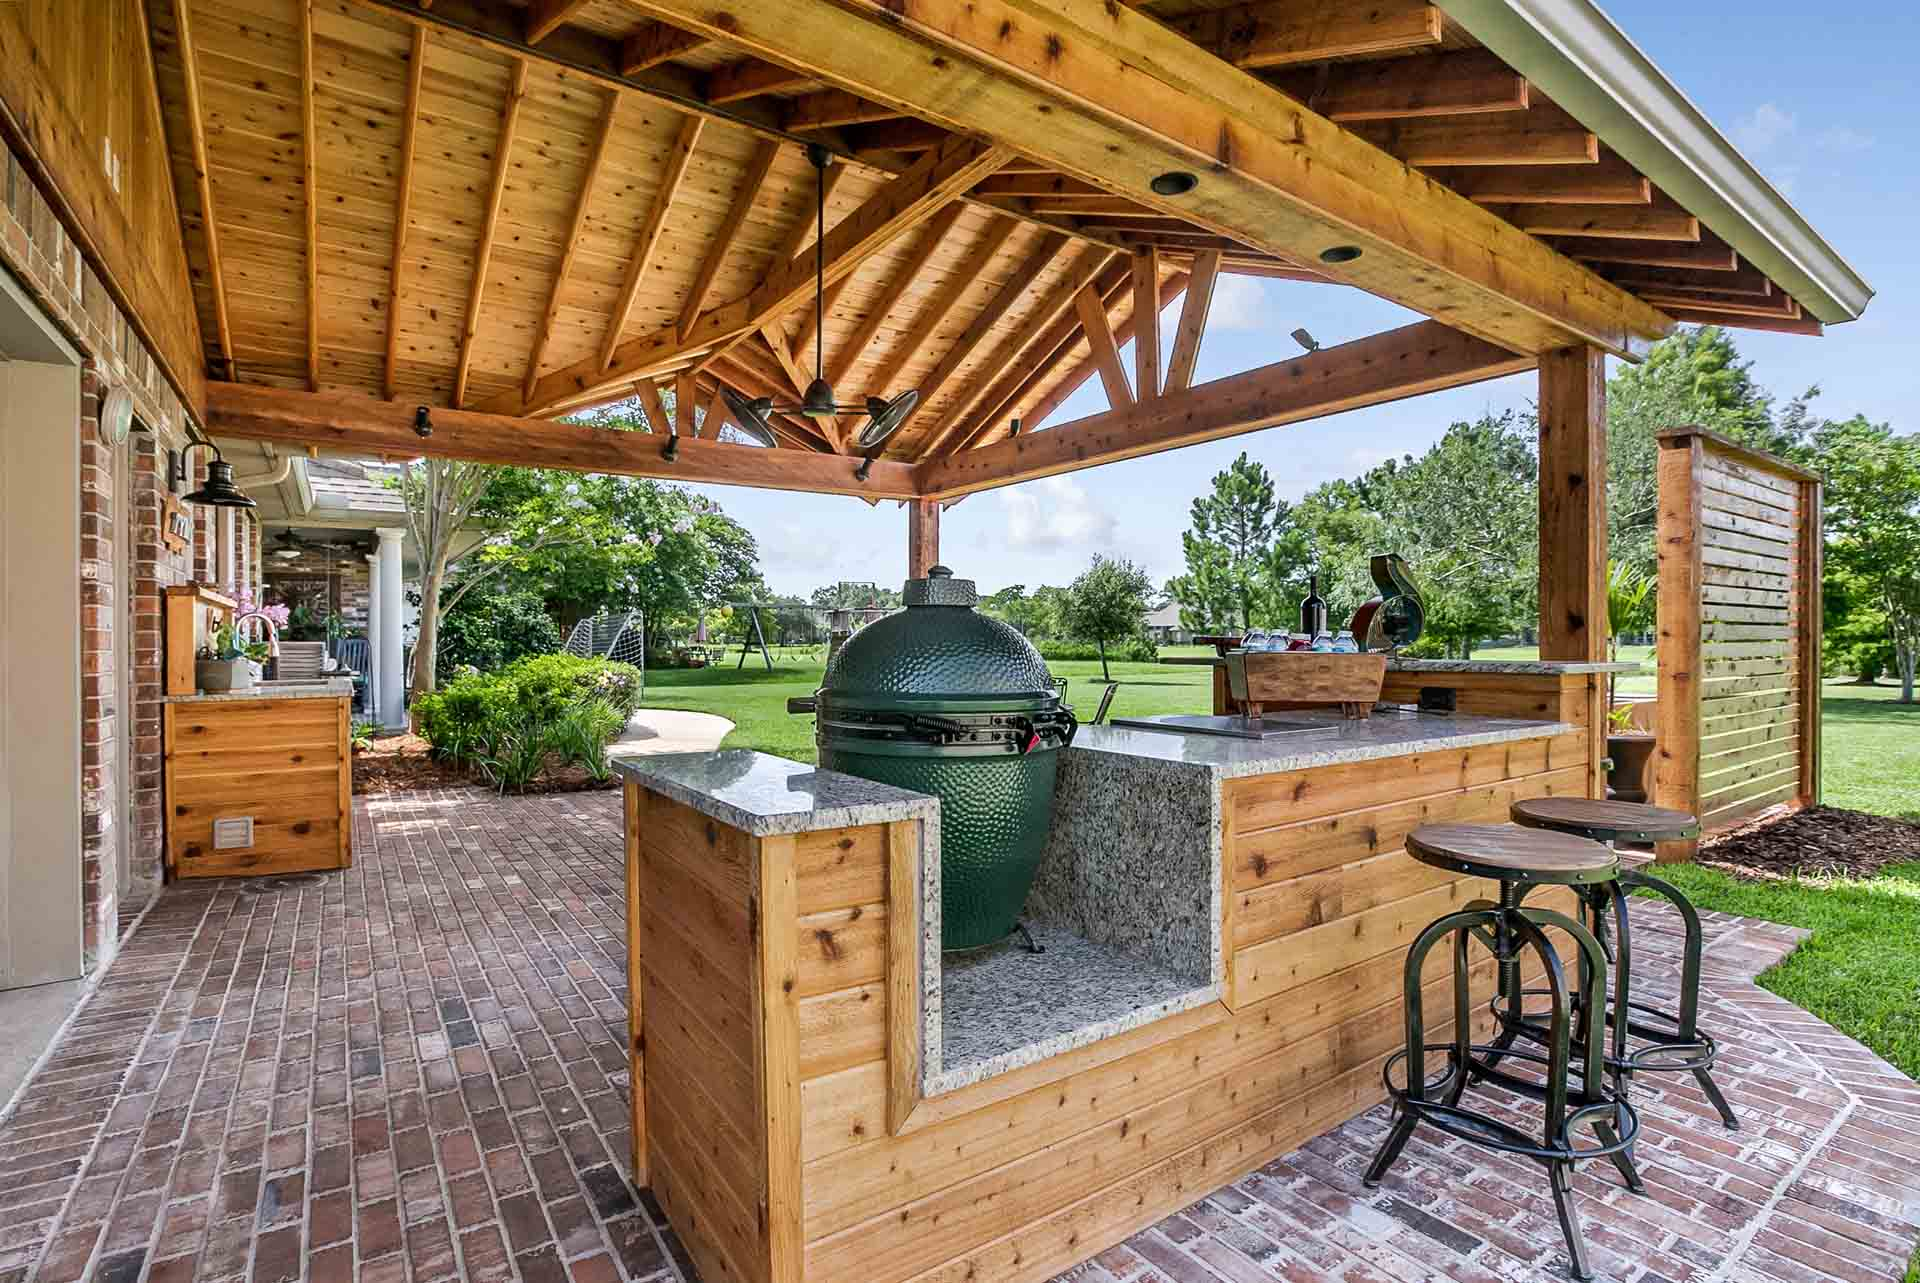 Pavilions | New Orleans Garden Pavilions | Custom Outdoor ... on Outdoor Patio Pavilion id=44070